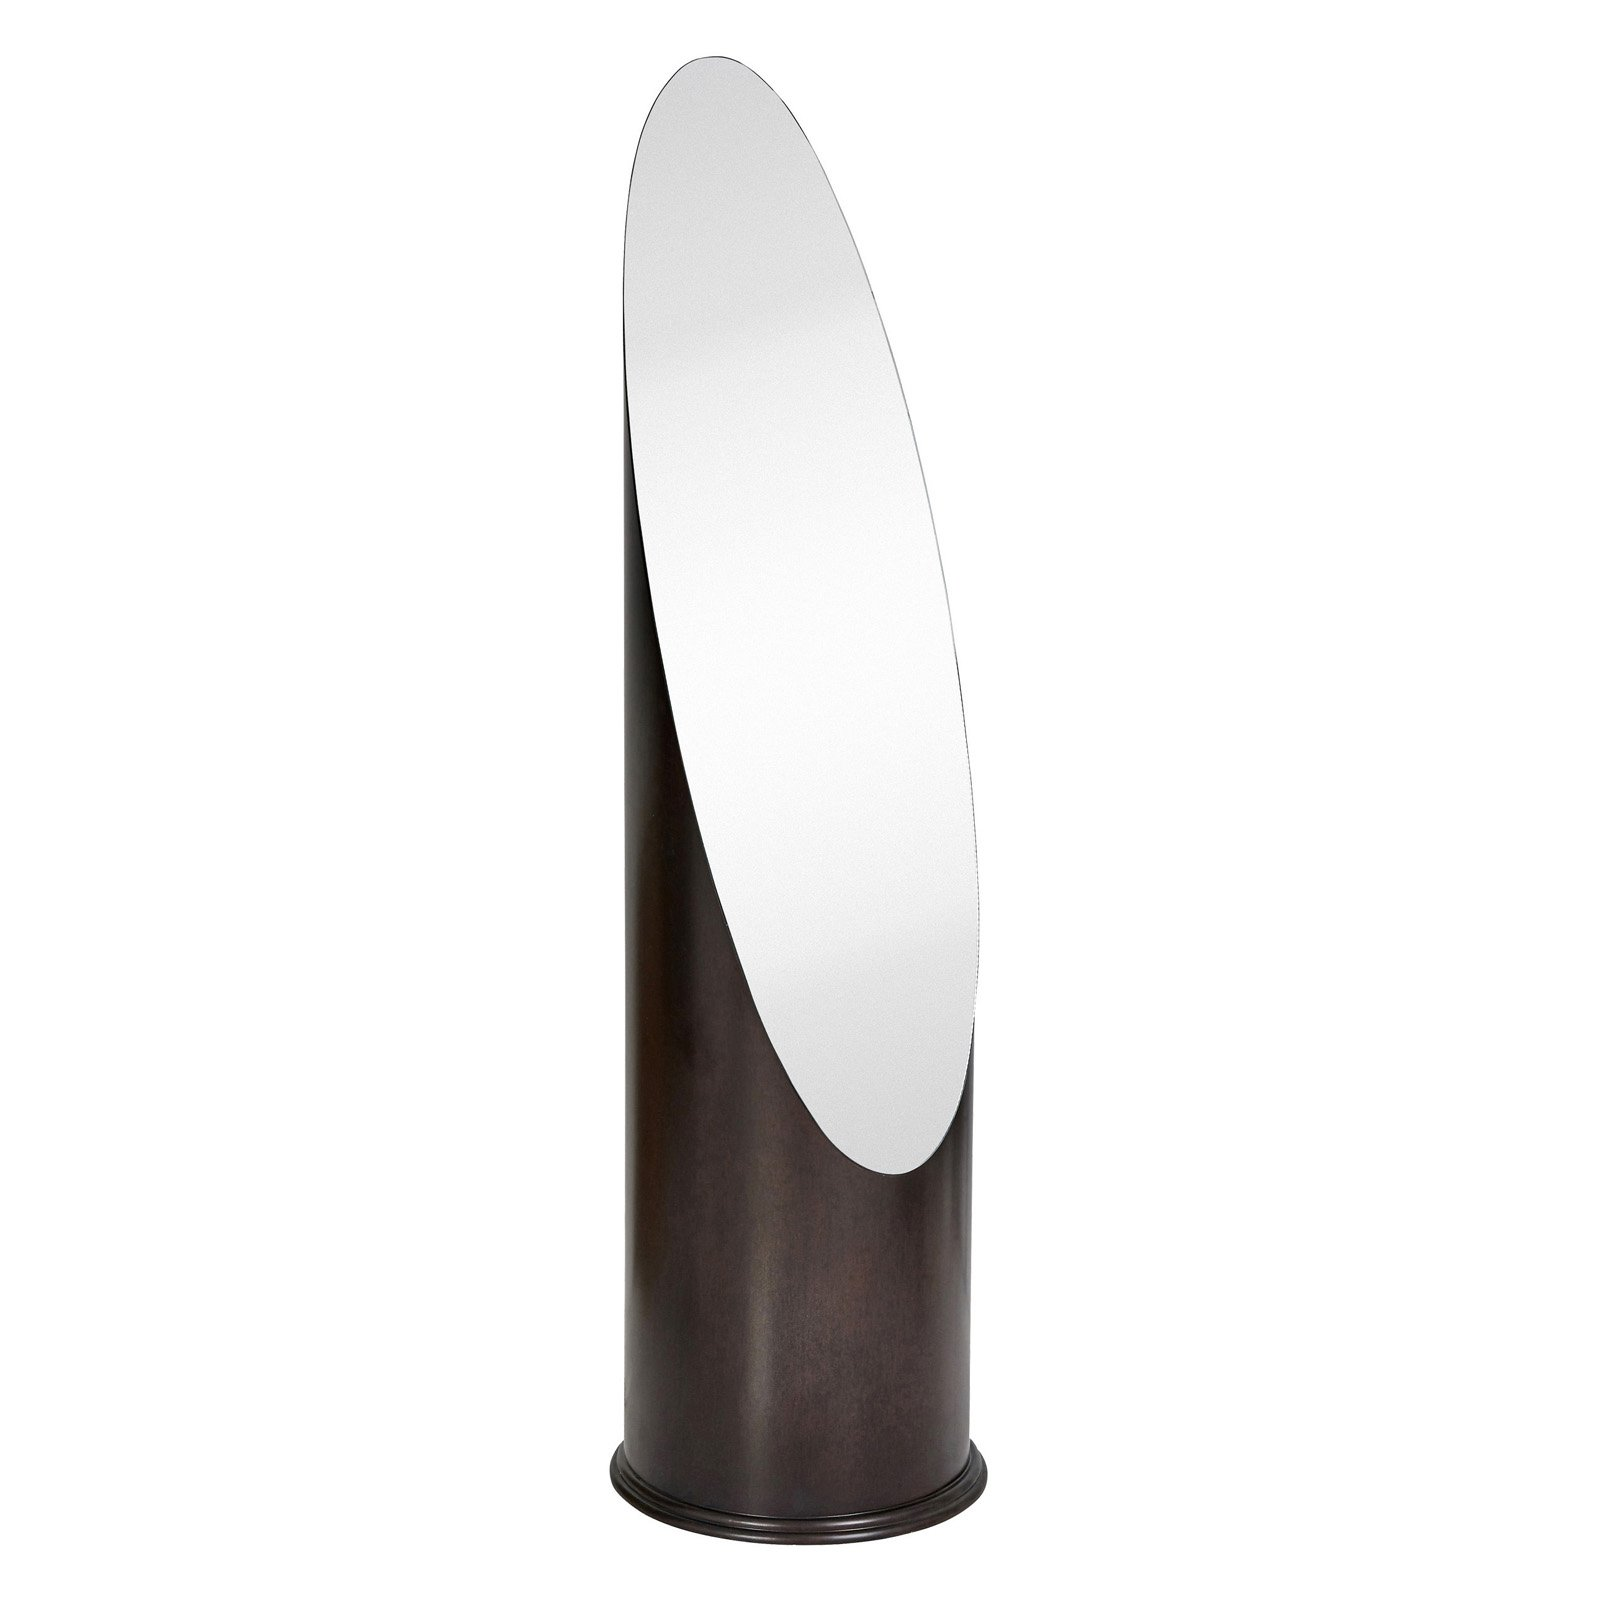 Majestic Dark Brown Pedestal Dressing Floor Mirror by